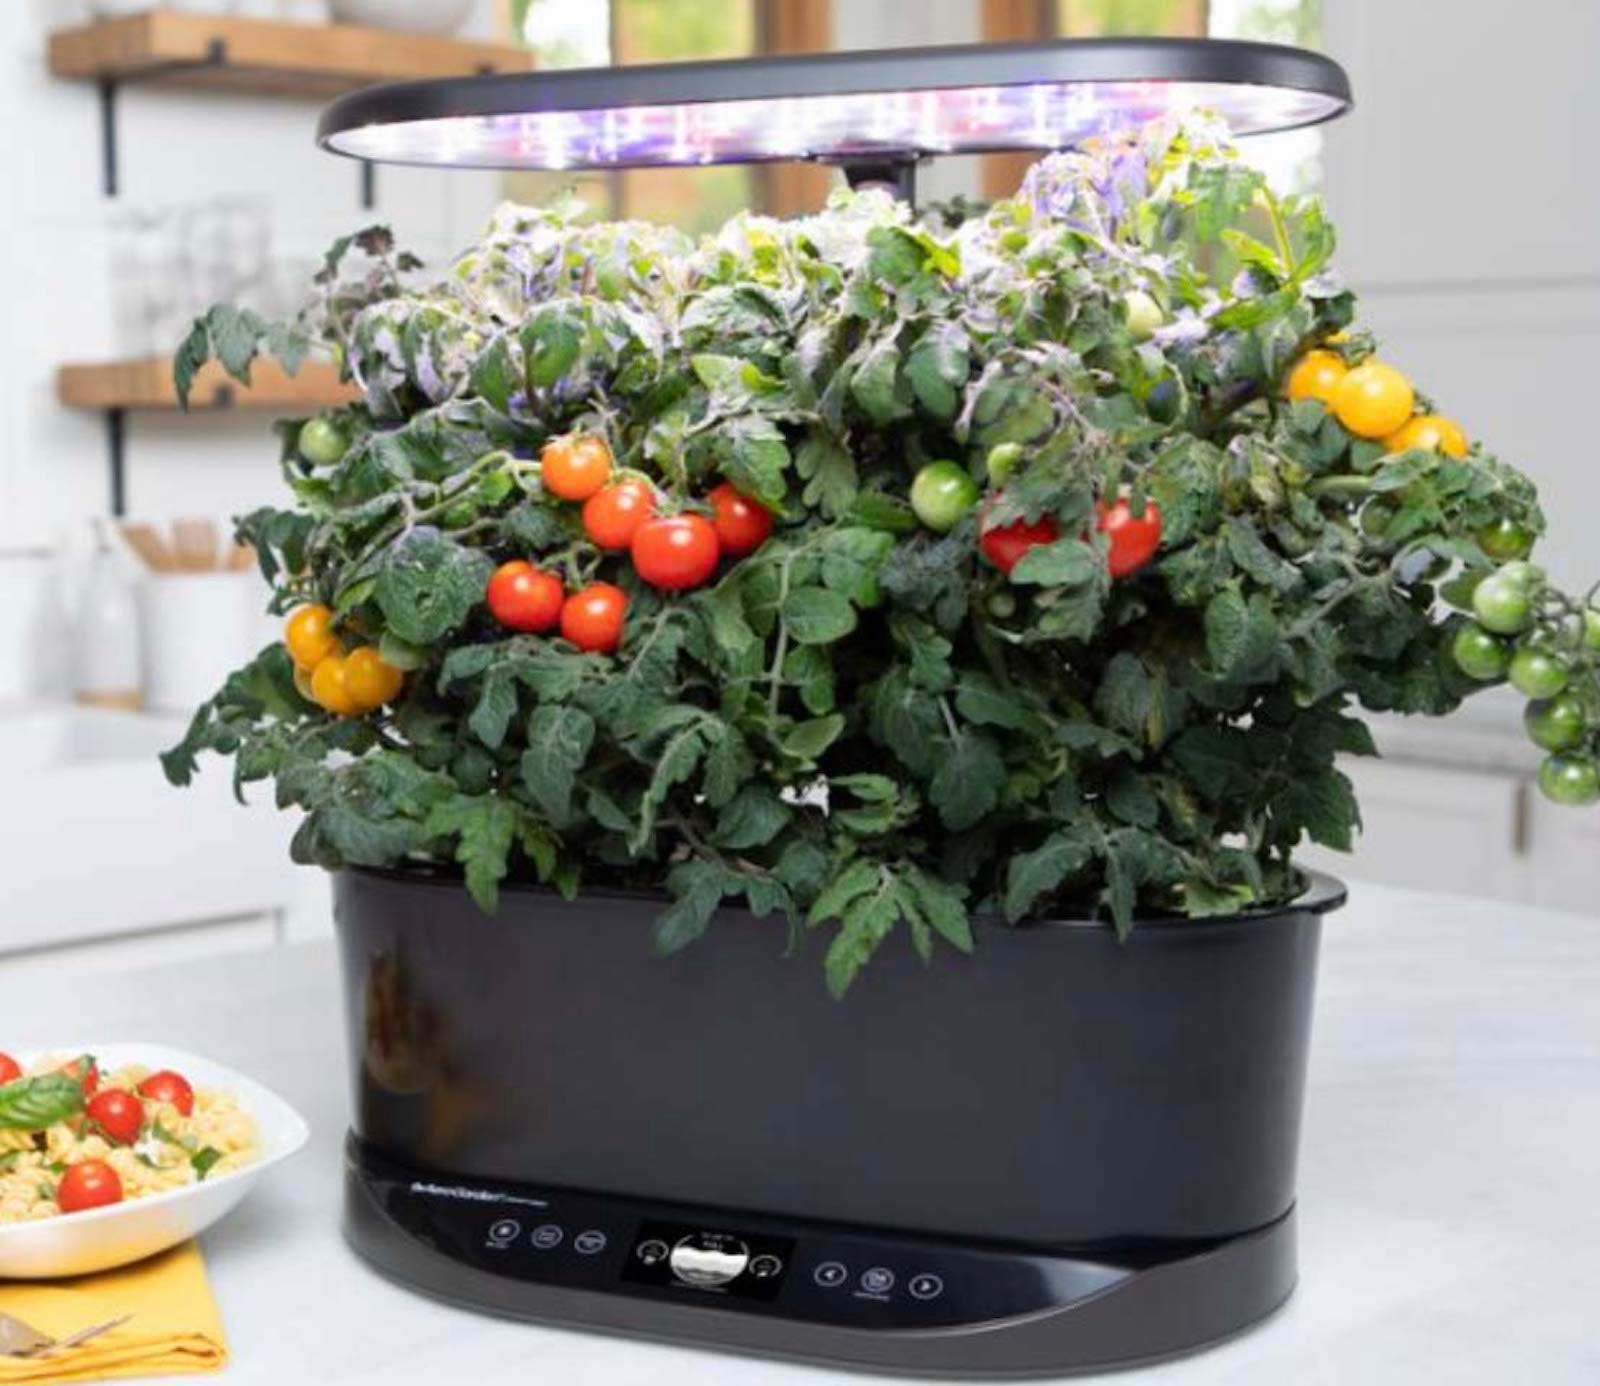 A black hydroponic garden with tomato plants on a kitchen counter